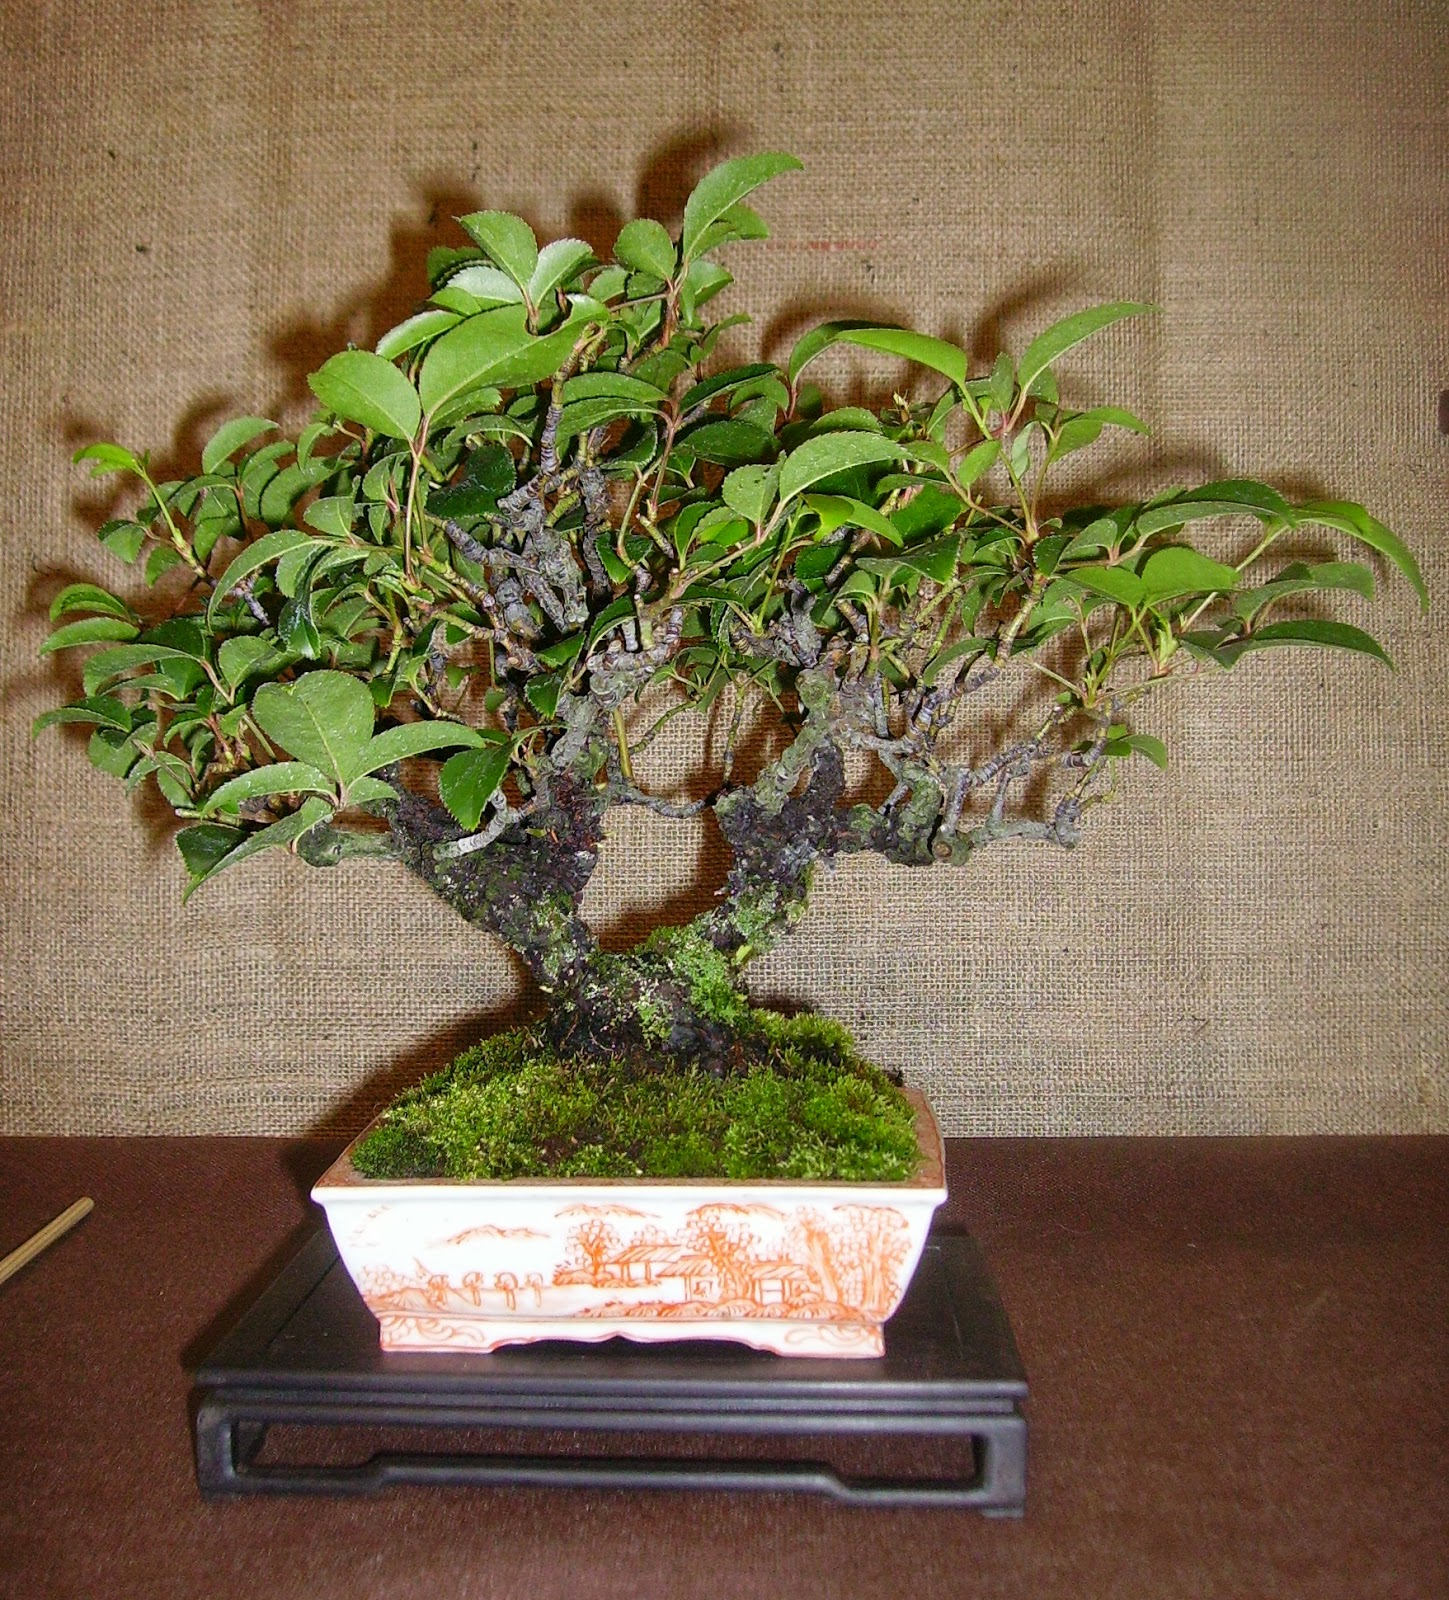 Bespoke Bonsai Stands September 2013